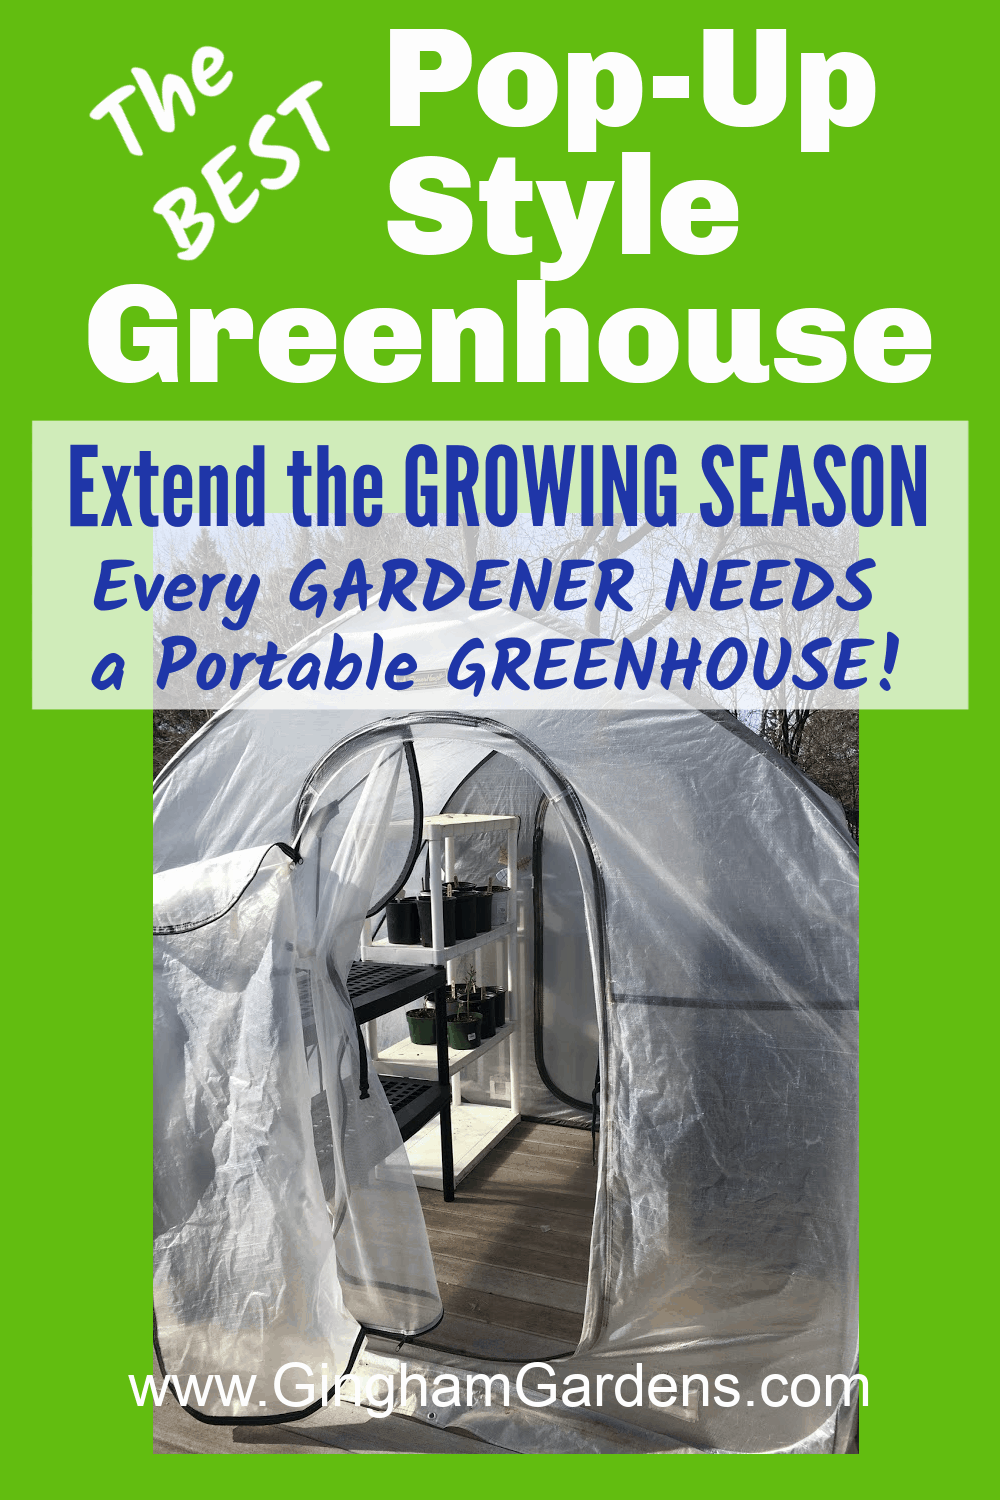 Image of a pop-up greenhouse with text overlay - the best pop-up style greenhouse